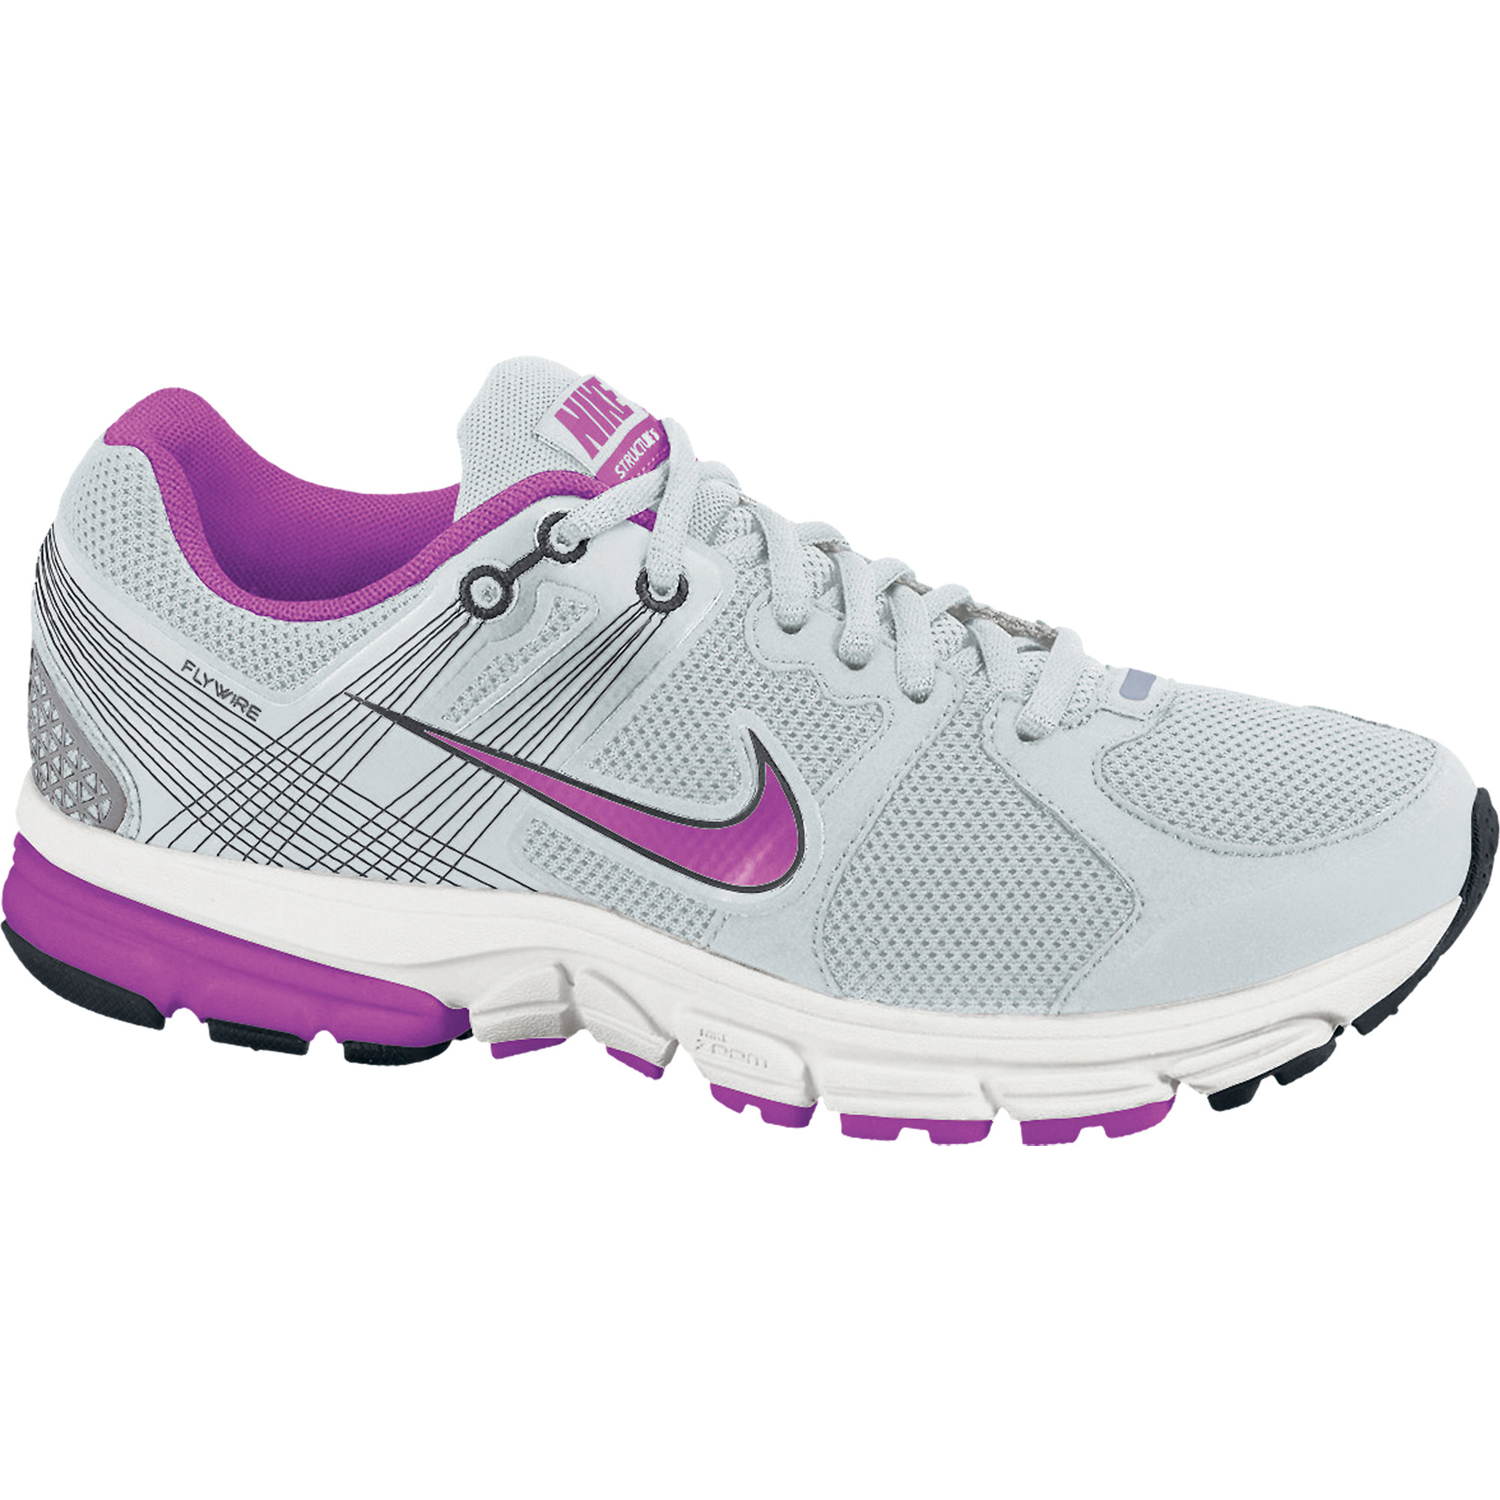 Wiggle Россия   Nike Ladies Nike Zoom Structure 15 Shoes